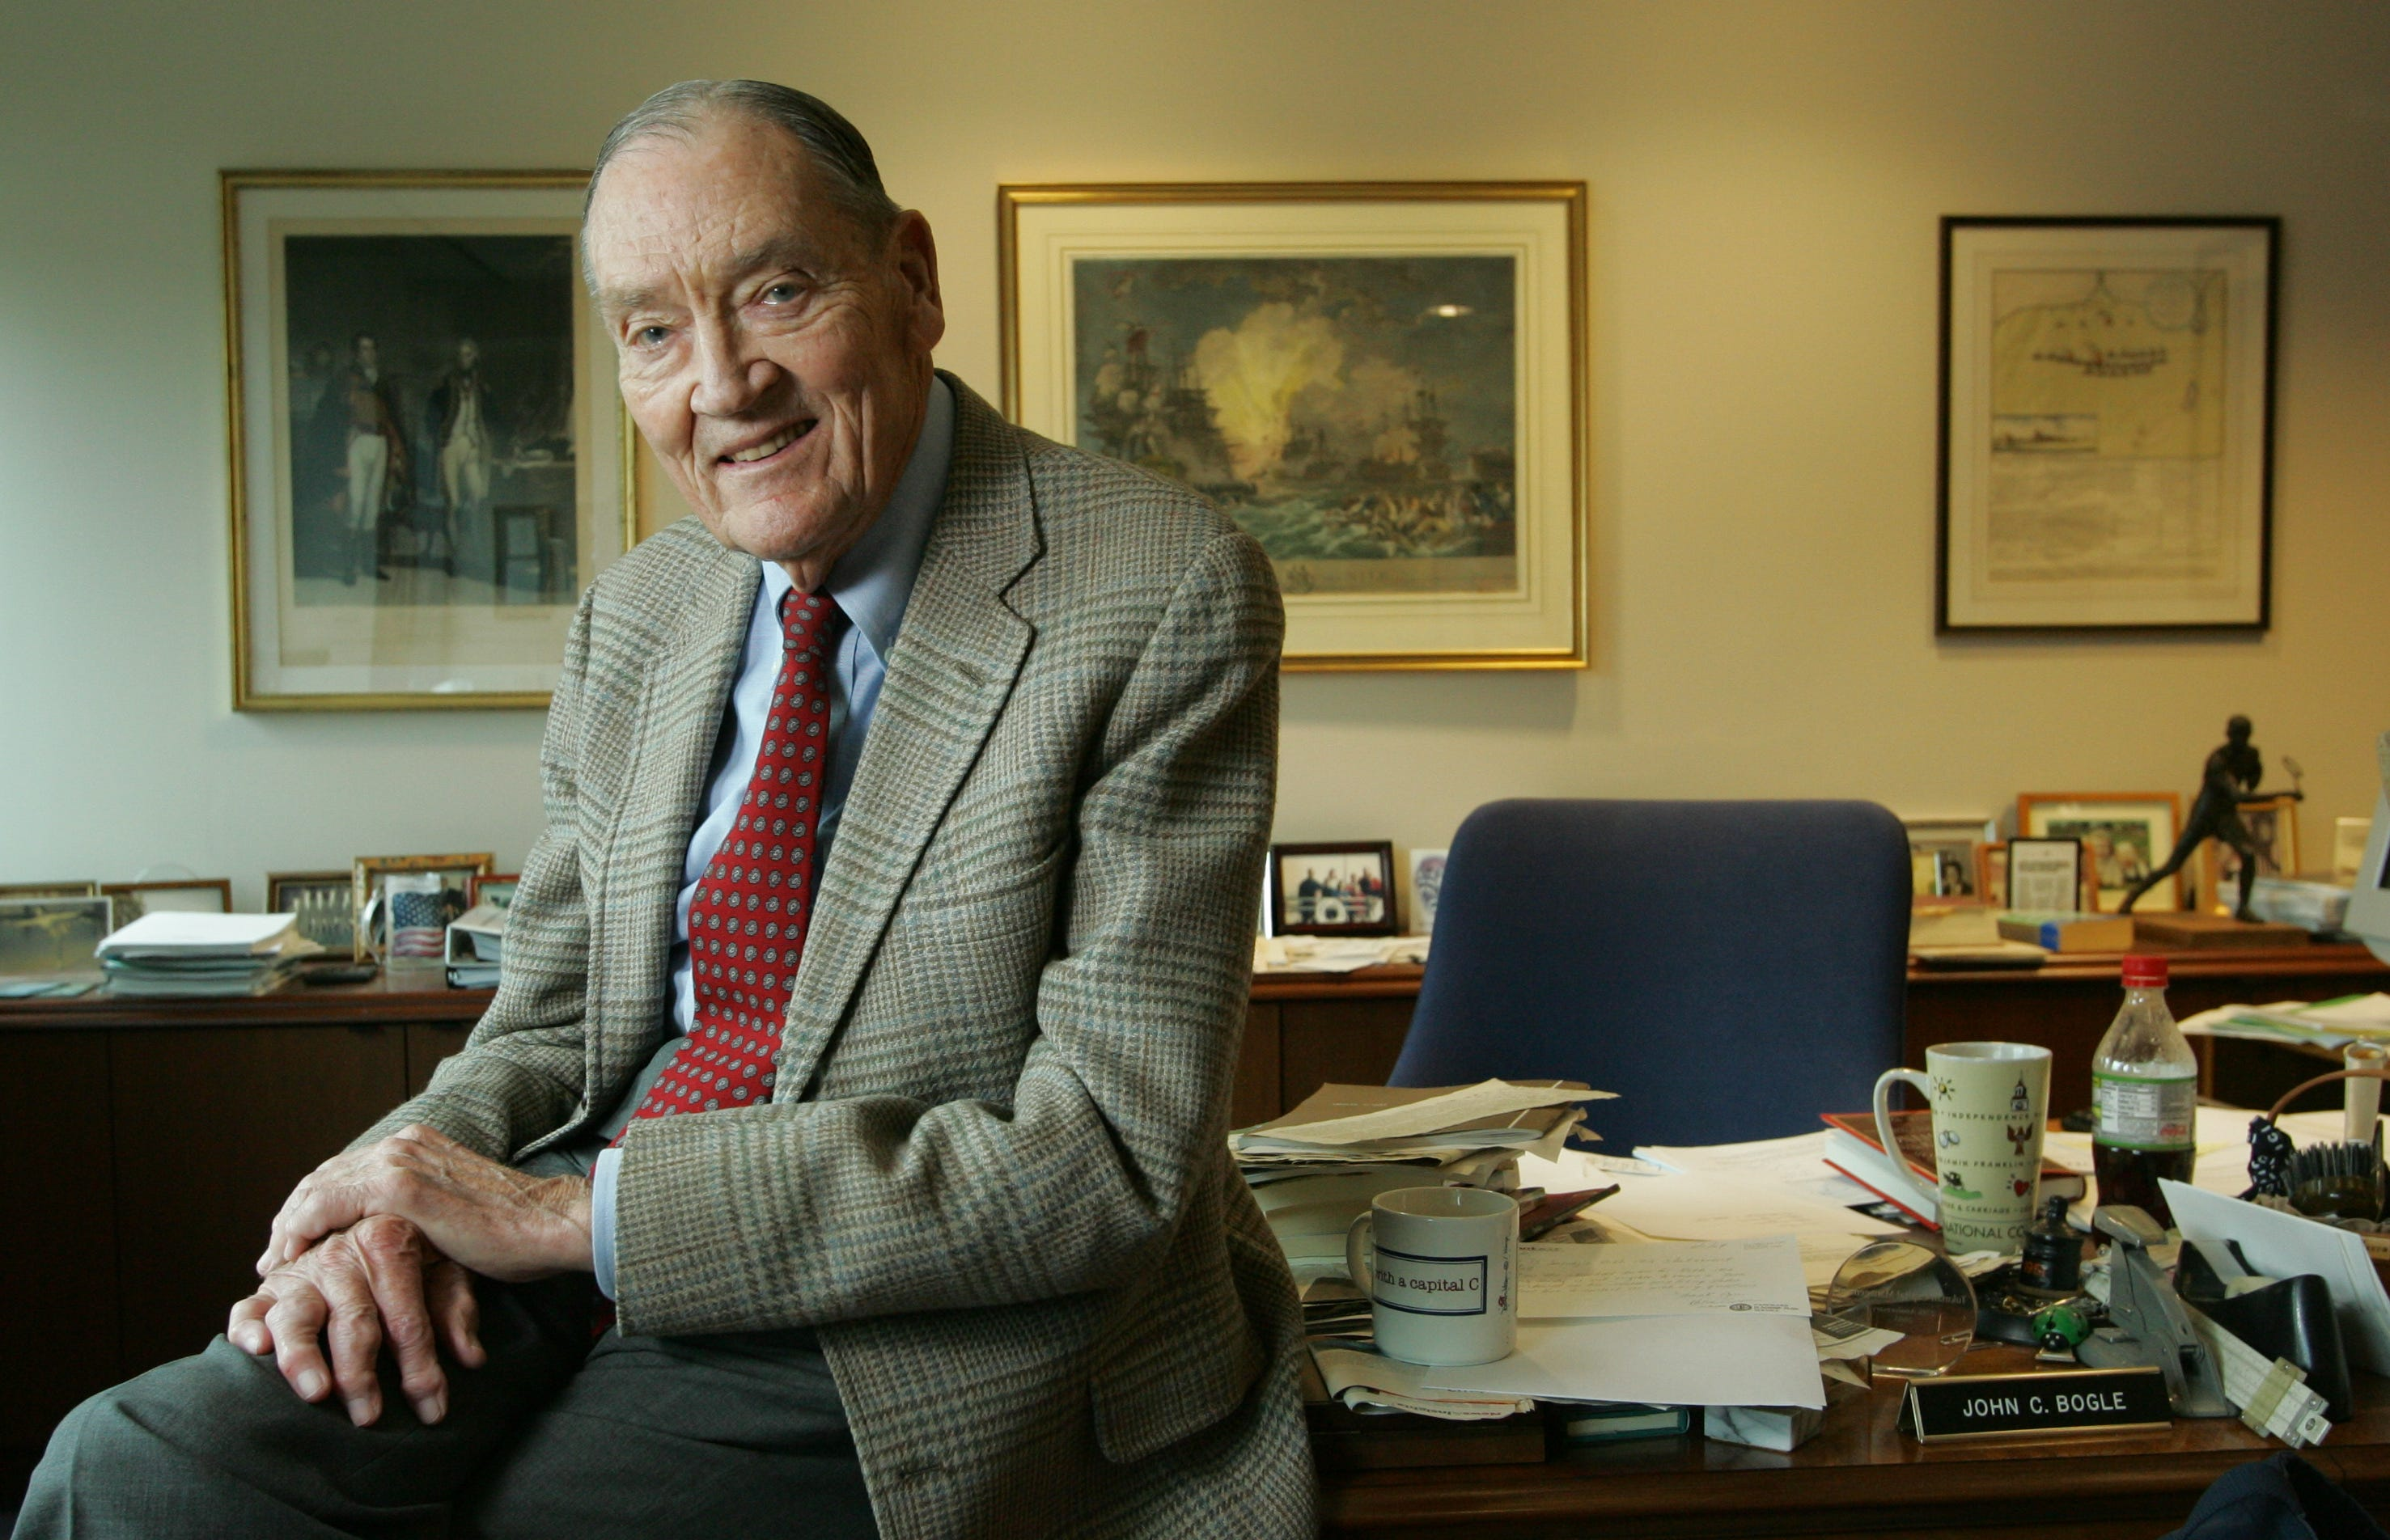 John Bogle, founder of Vanguard and 'father of index